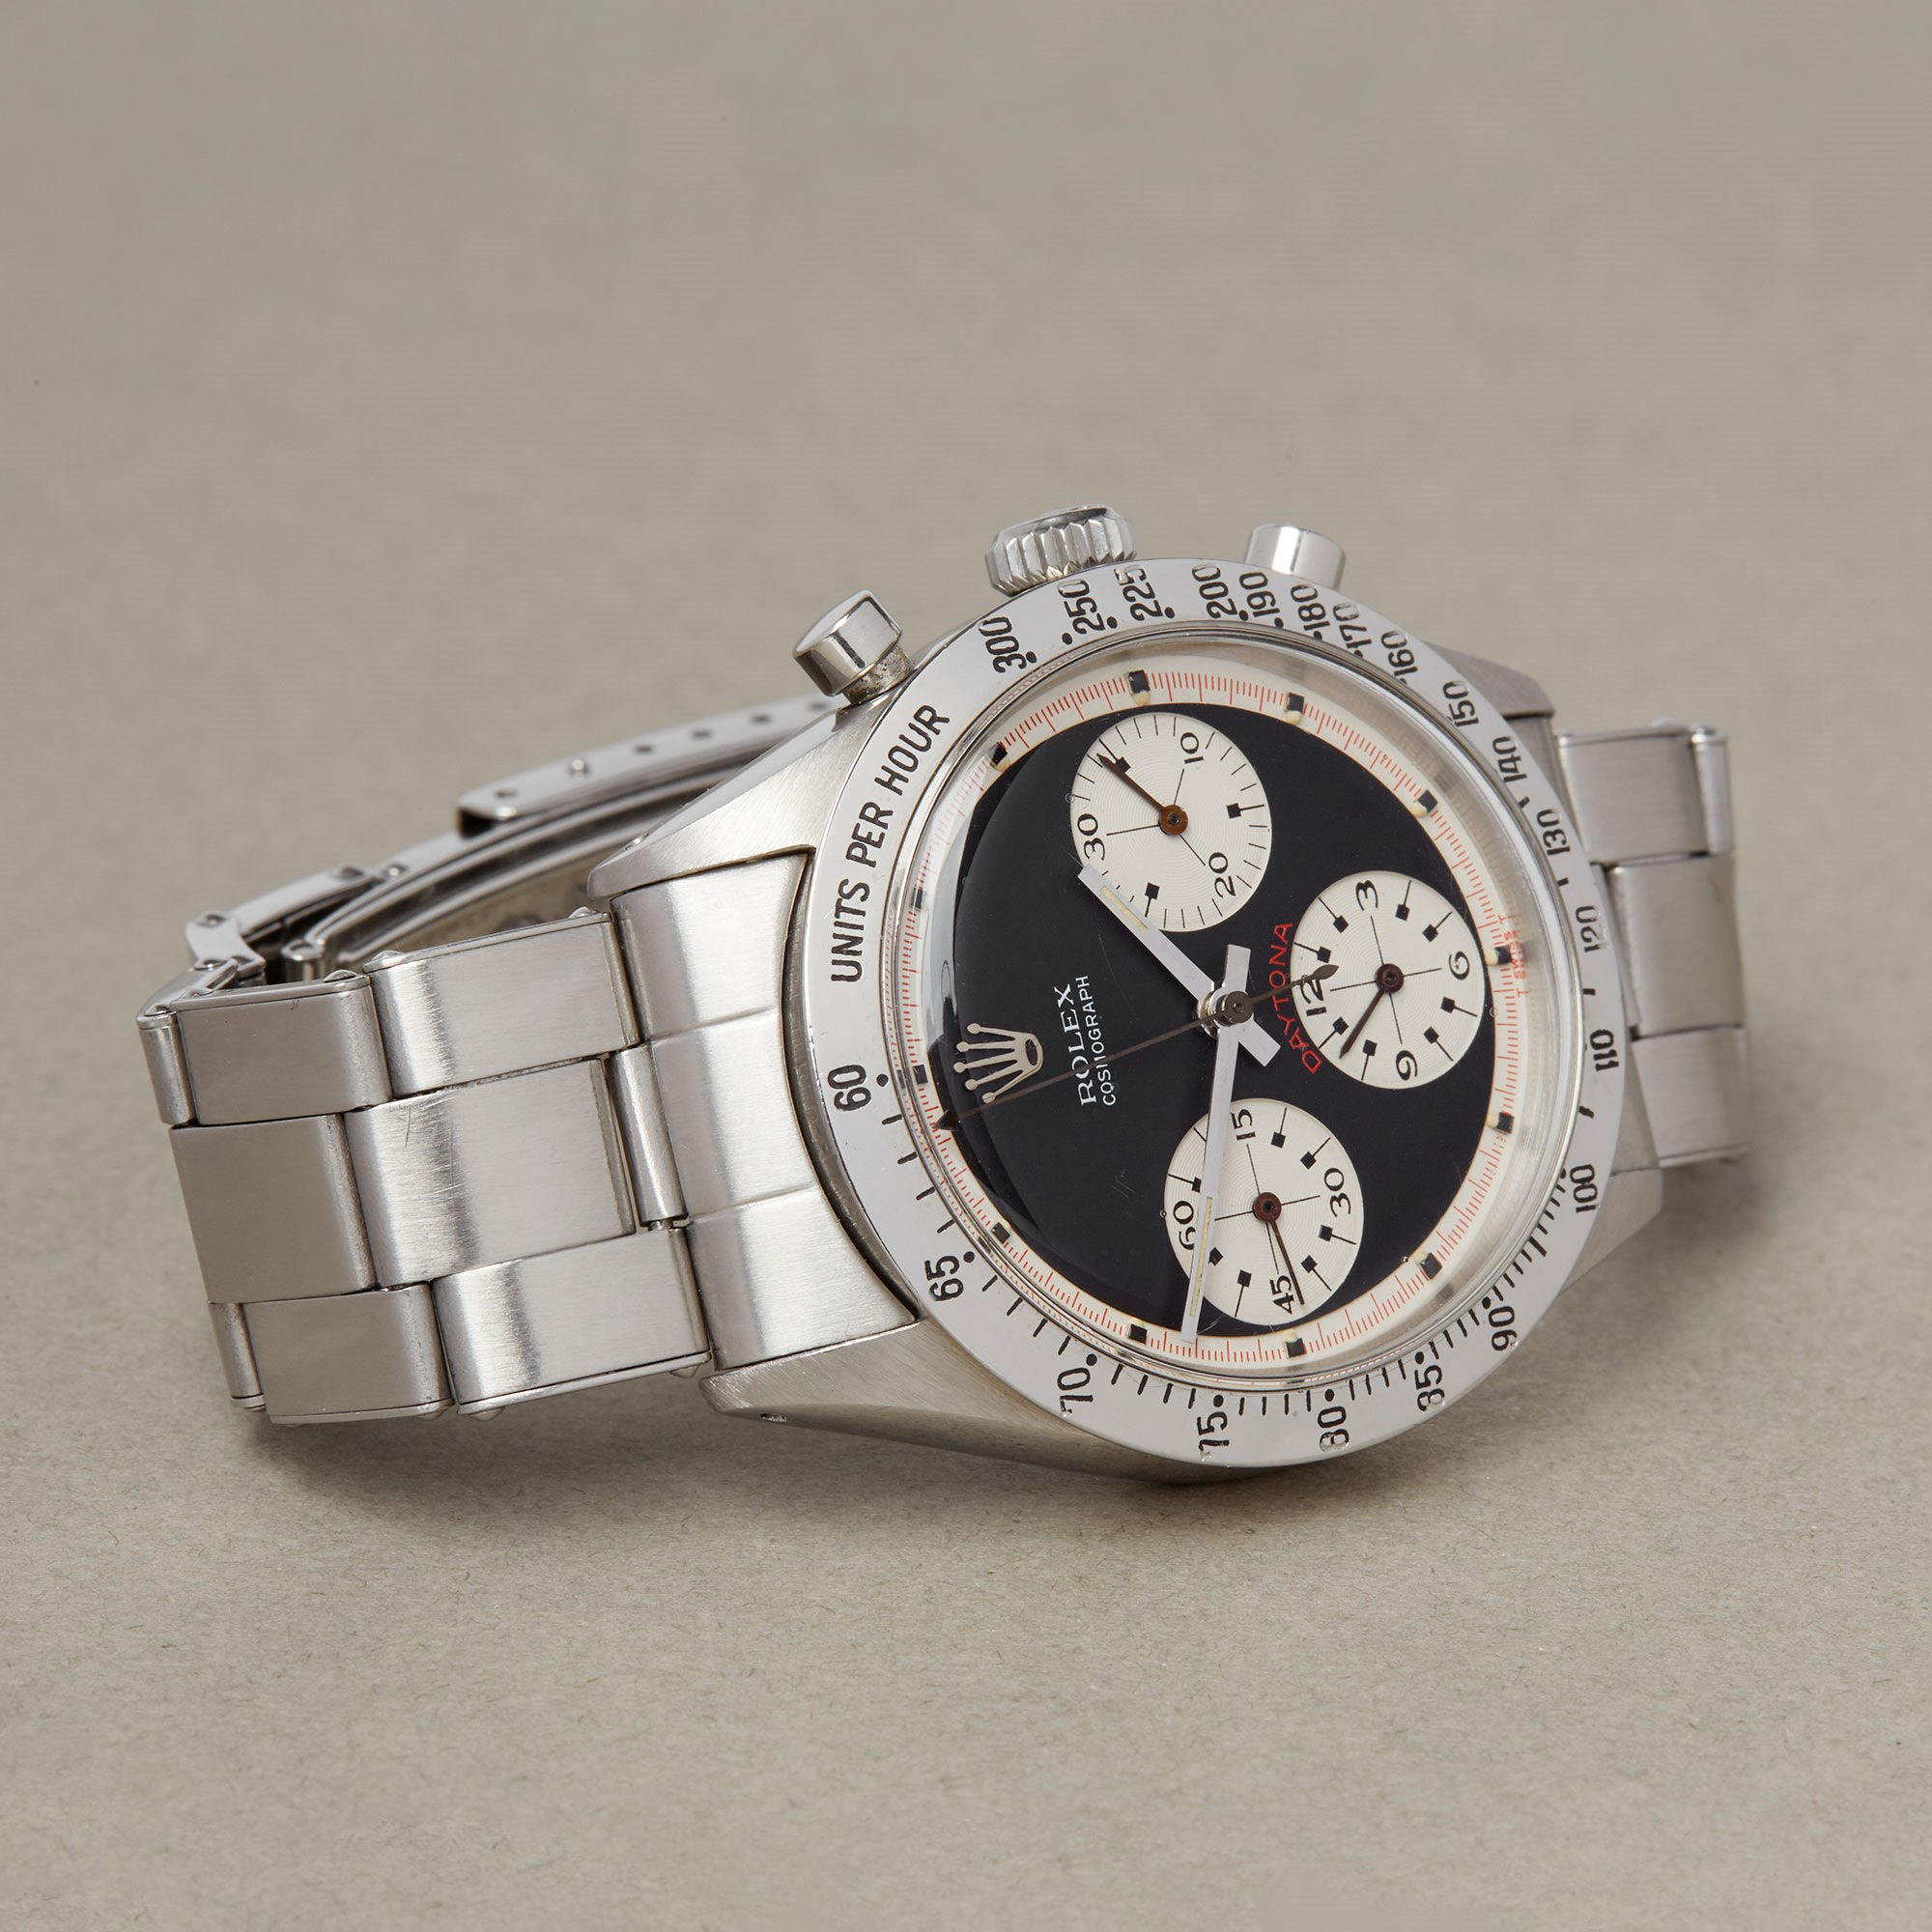 Rolex Daytona Stainless Steel - 6239 Roestvrij Staal 6239